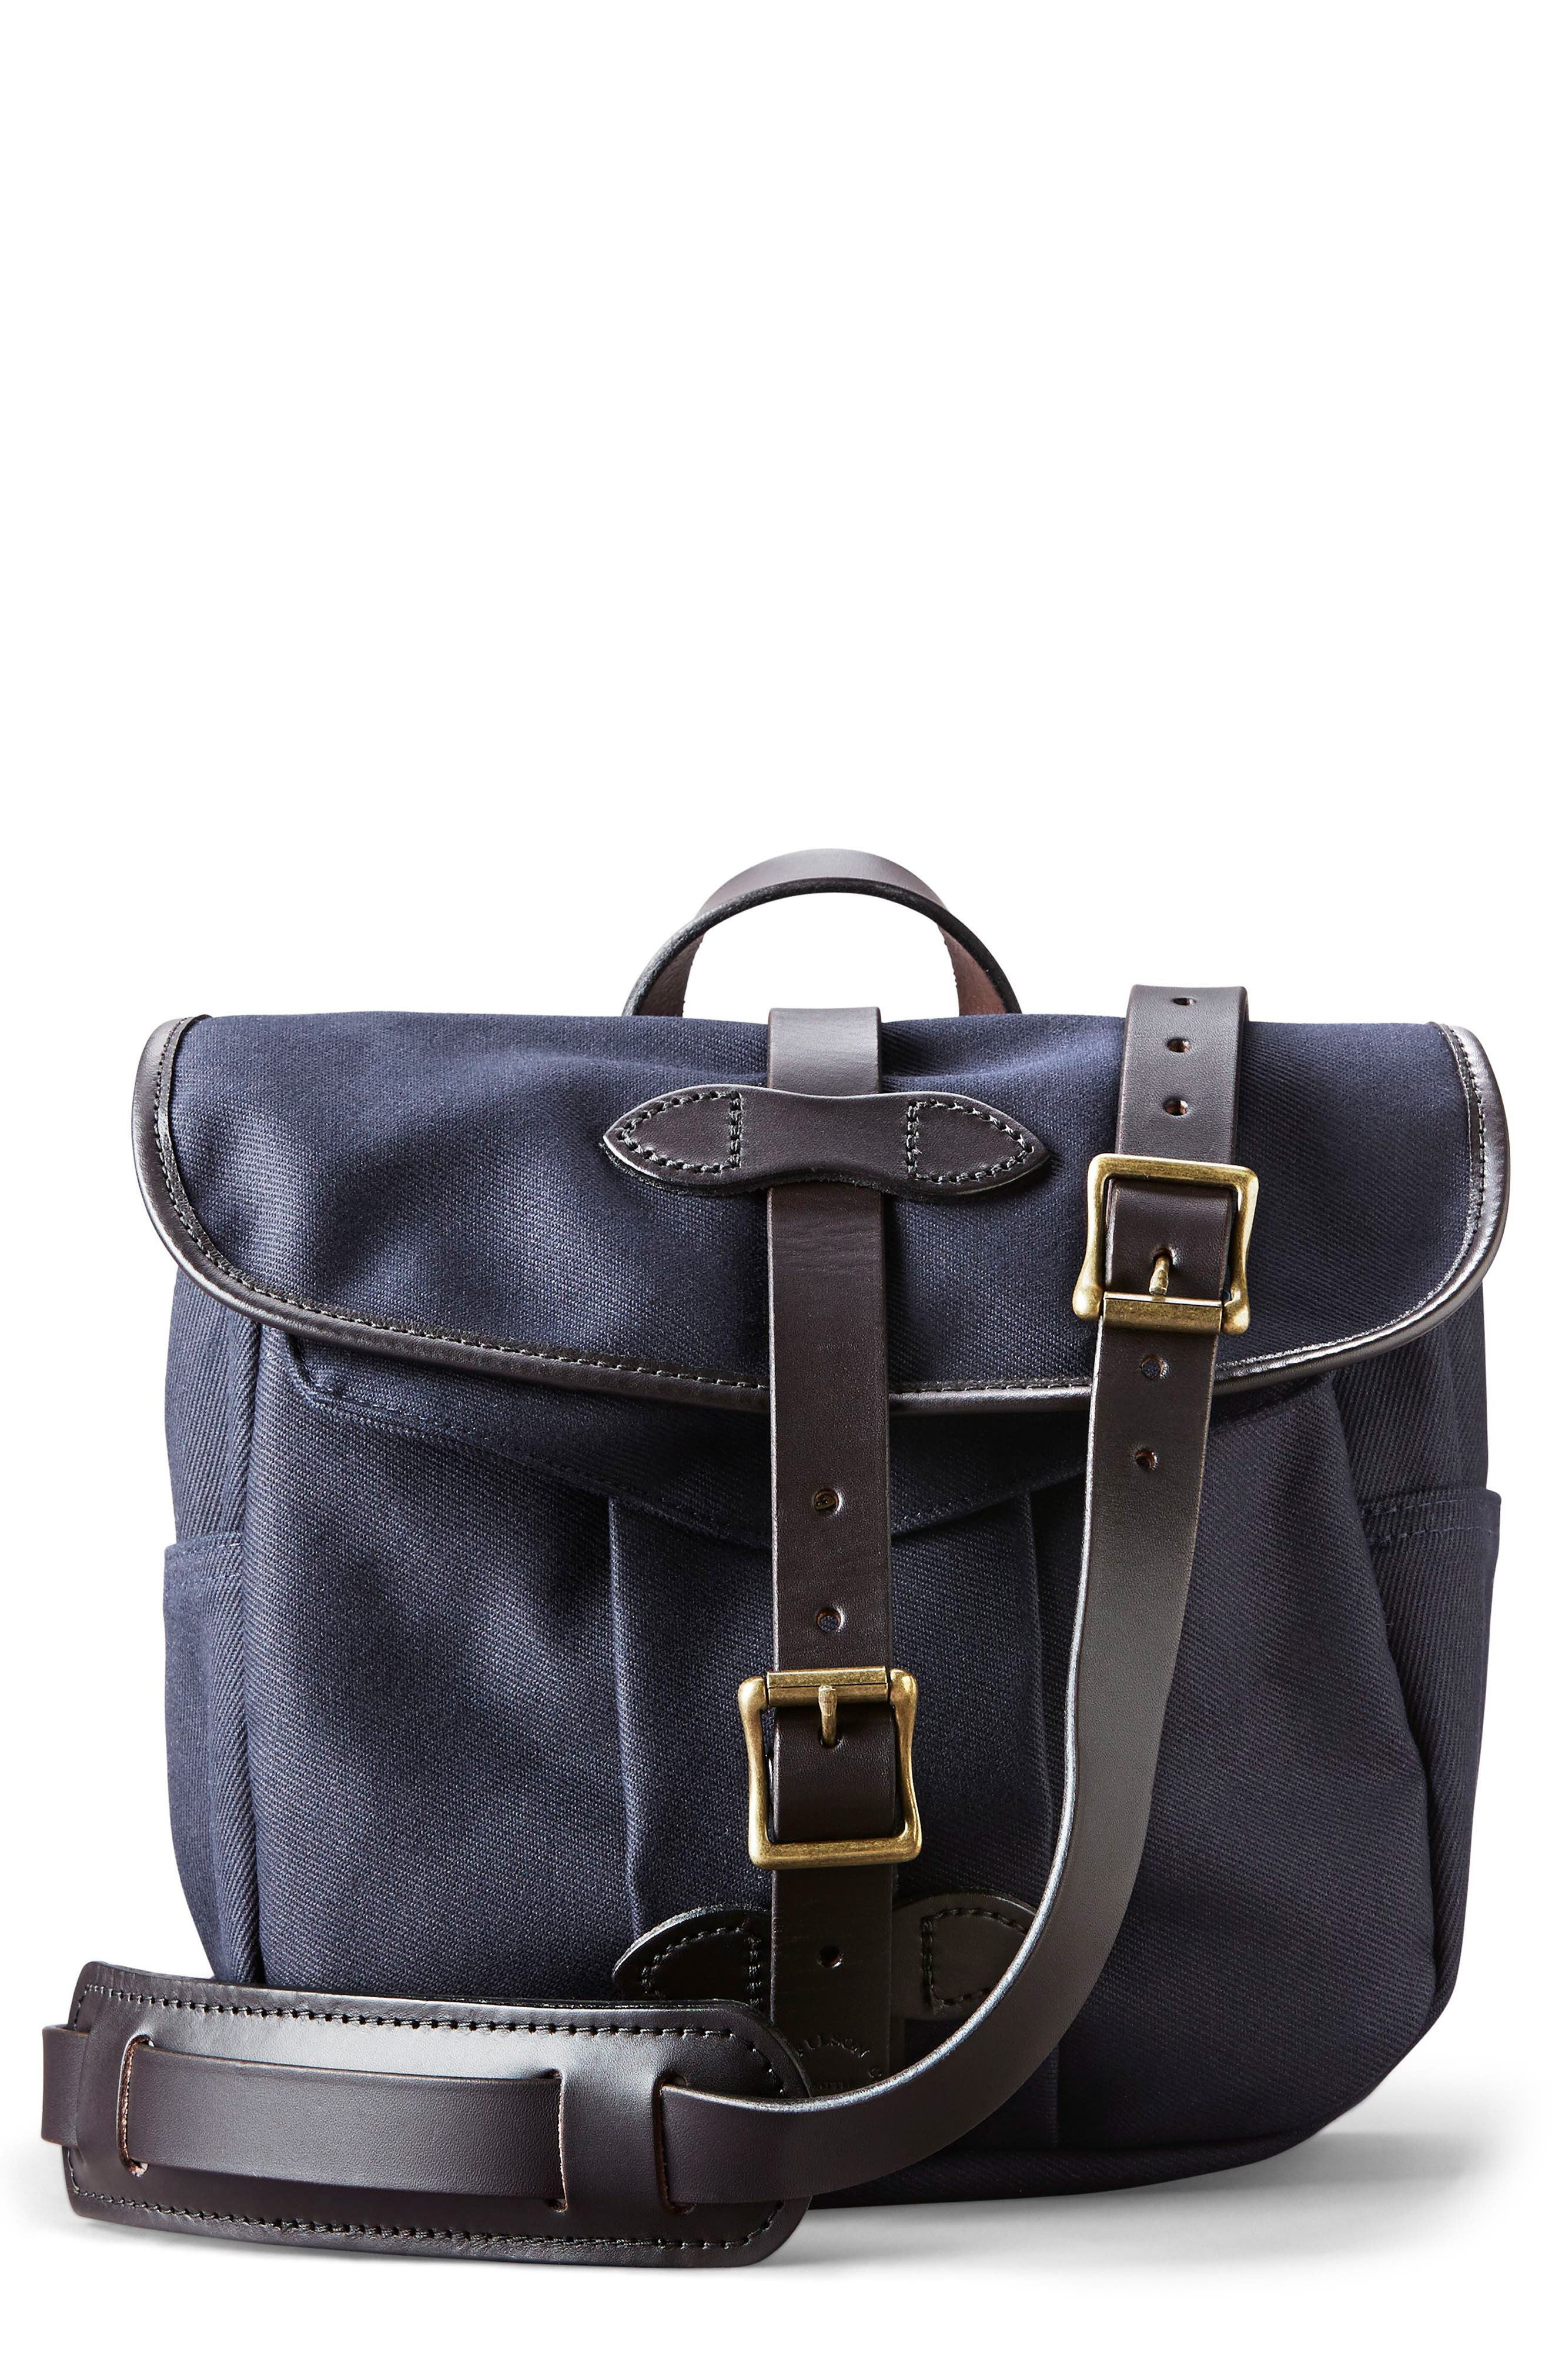 Alternate Image 1 Selected - Filson Small Field Bag